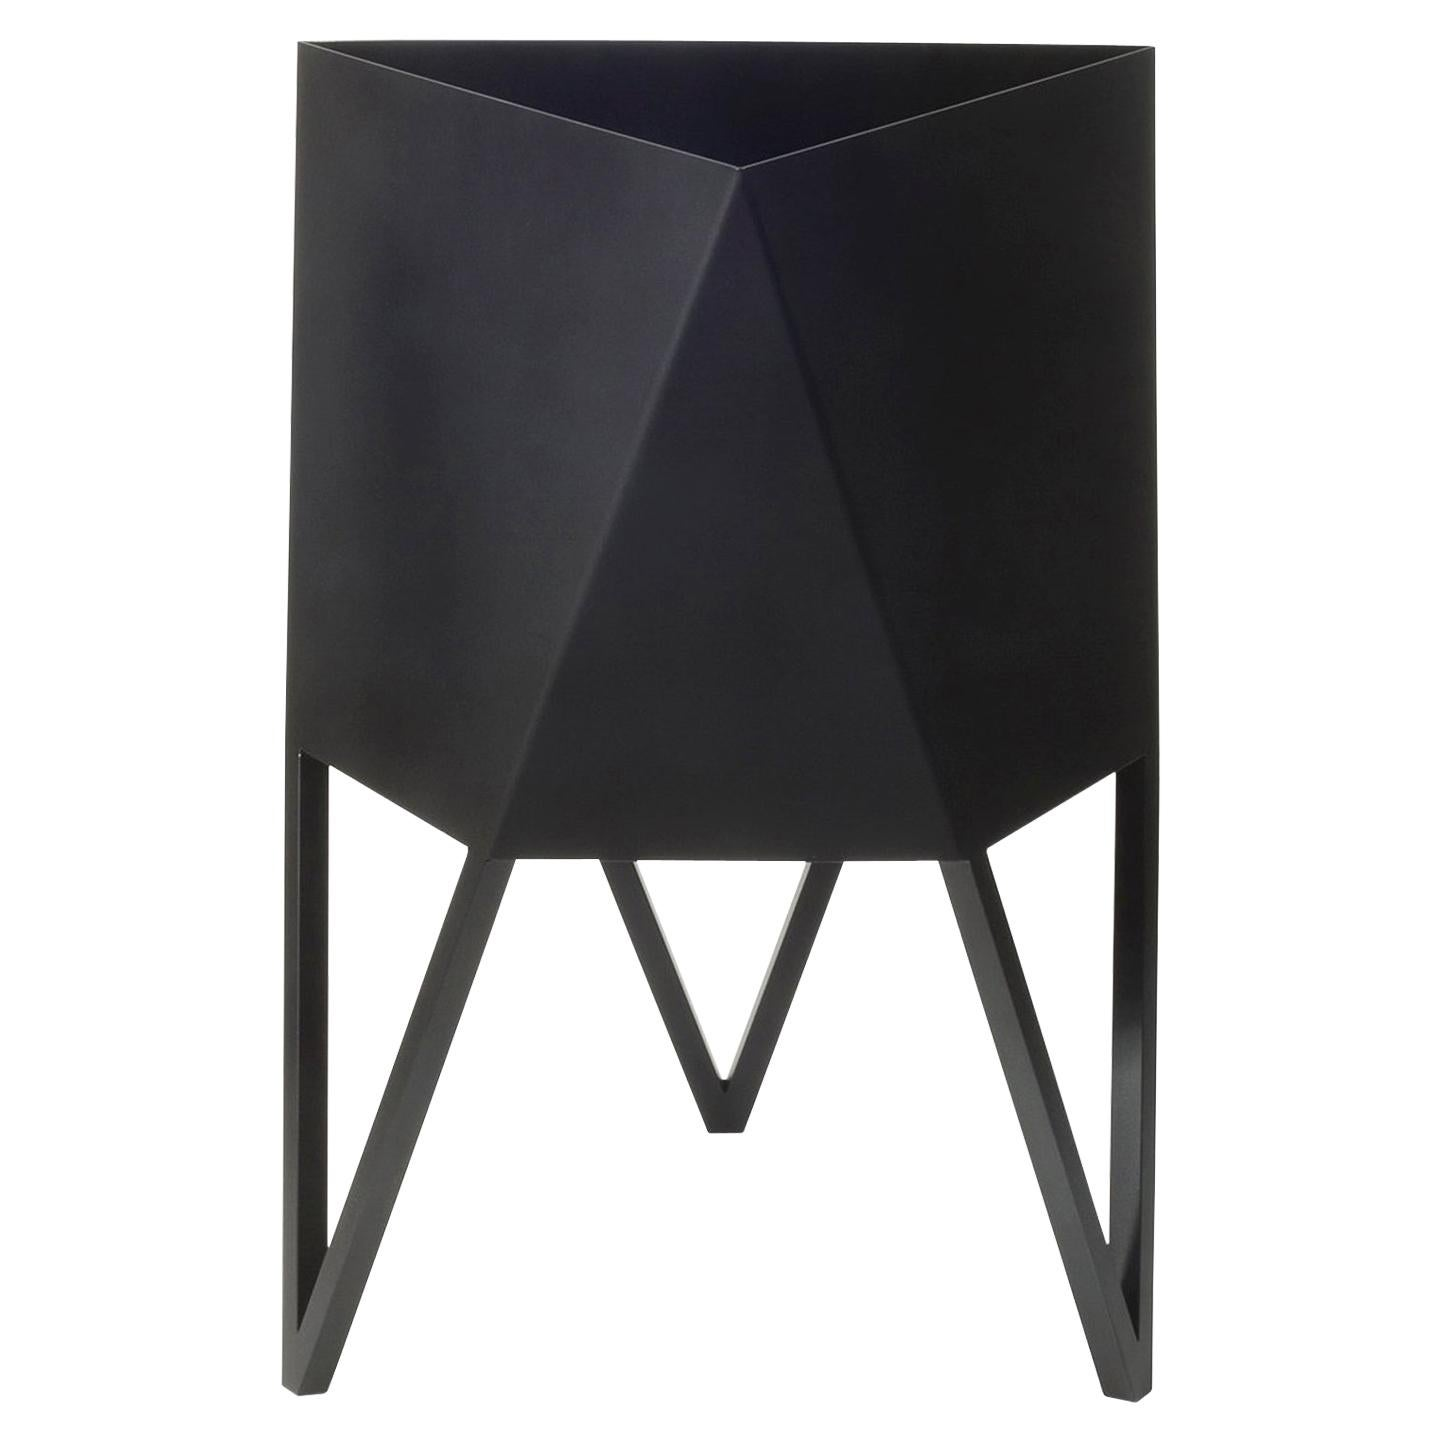 Large Deca Planter in Black by Force/Collide, 2021